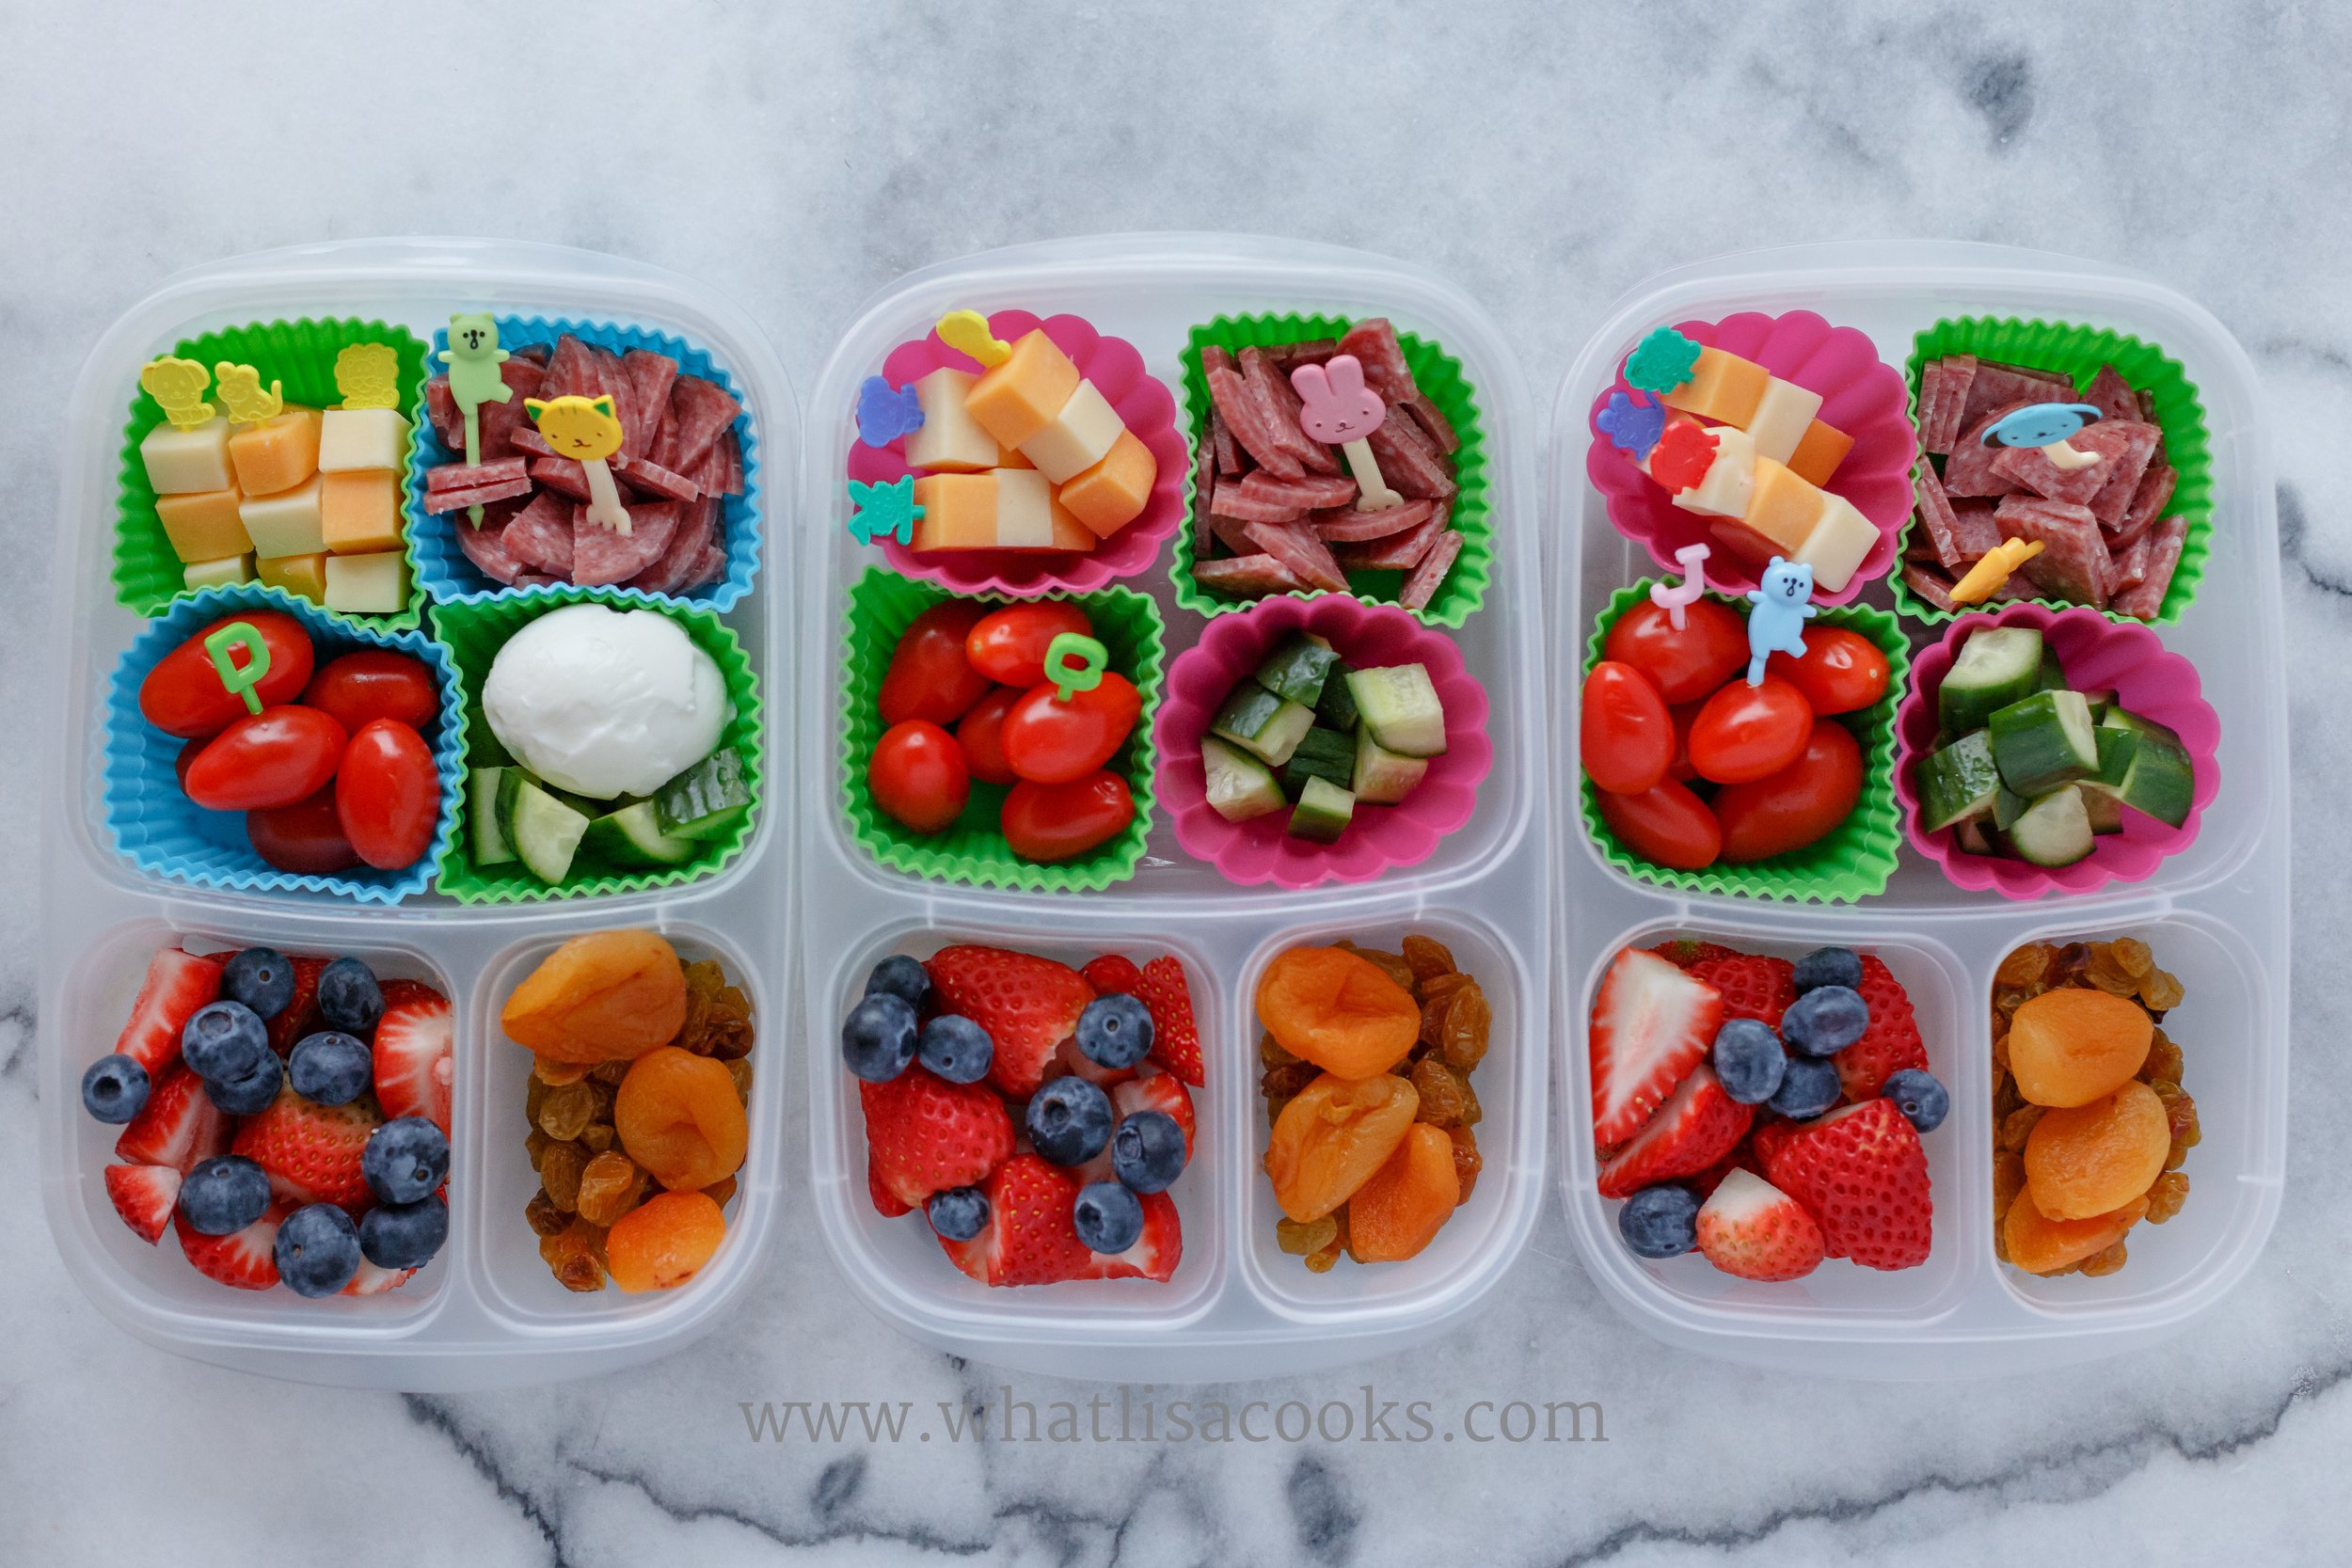 Mini cheese kebabs, salami, tomatoes, cucumbers, berries, and dried fruit.